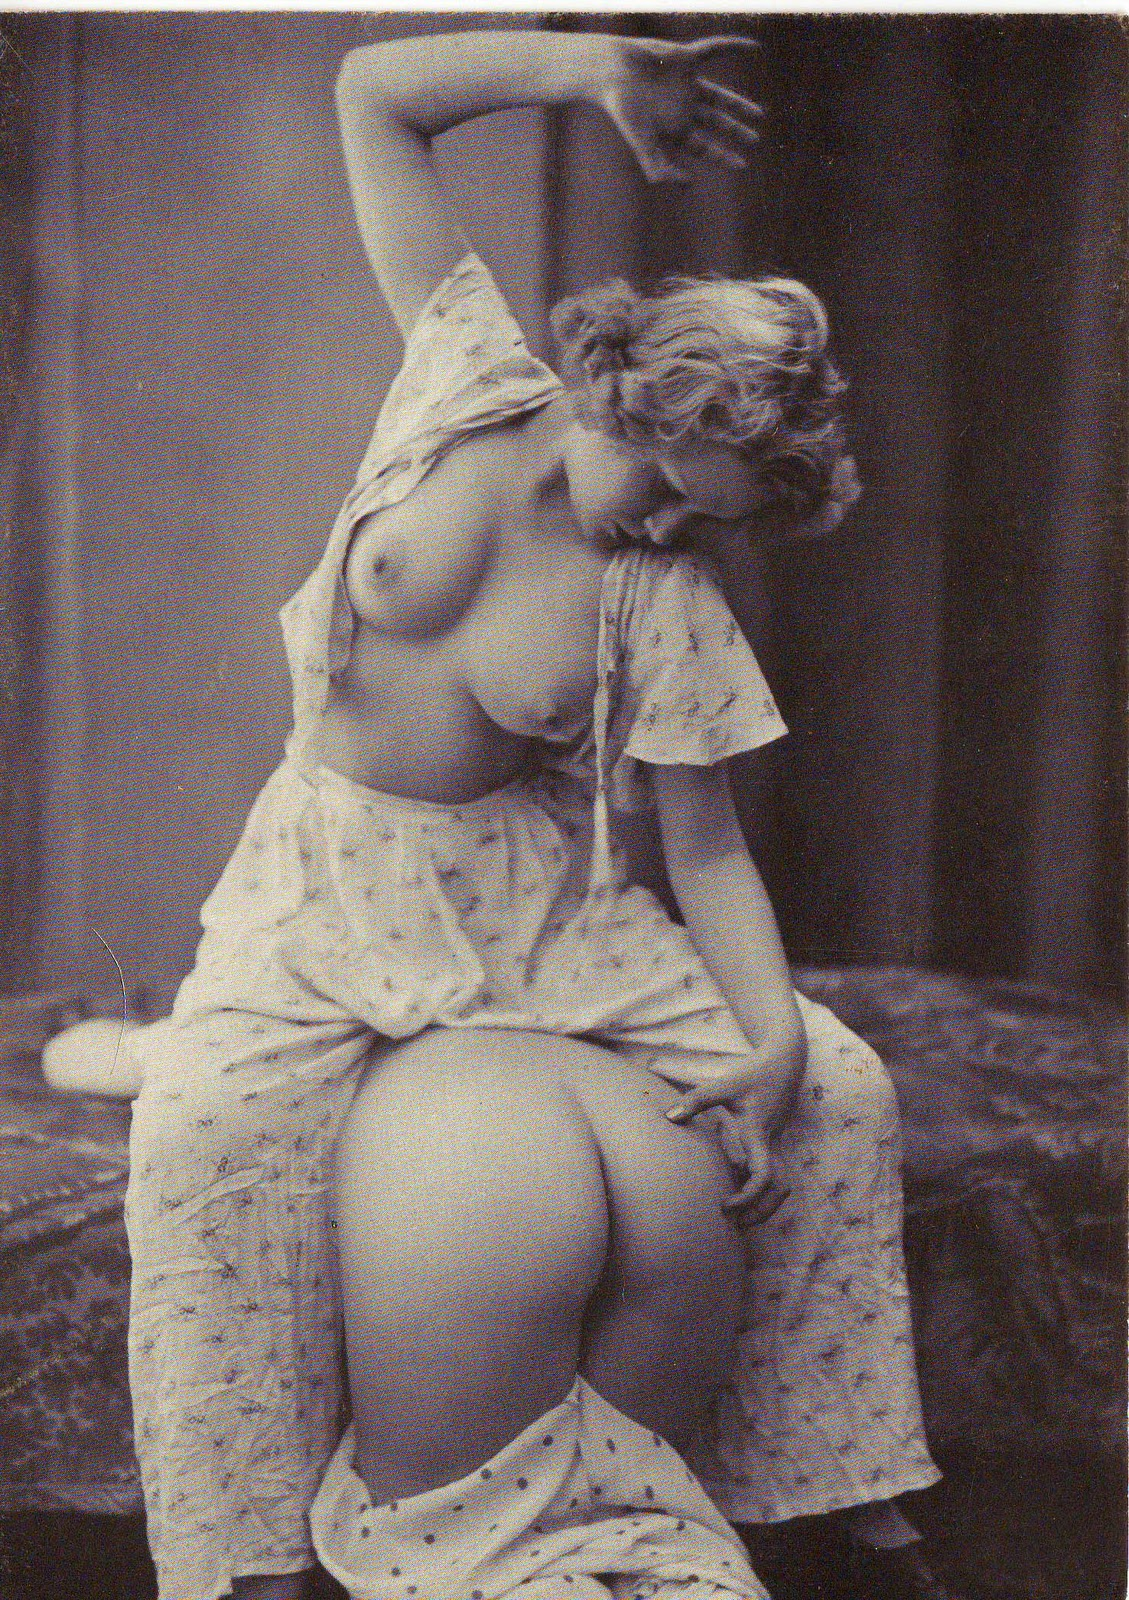 Vintage erotic spanking remarkable, the